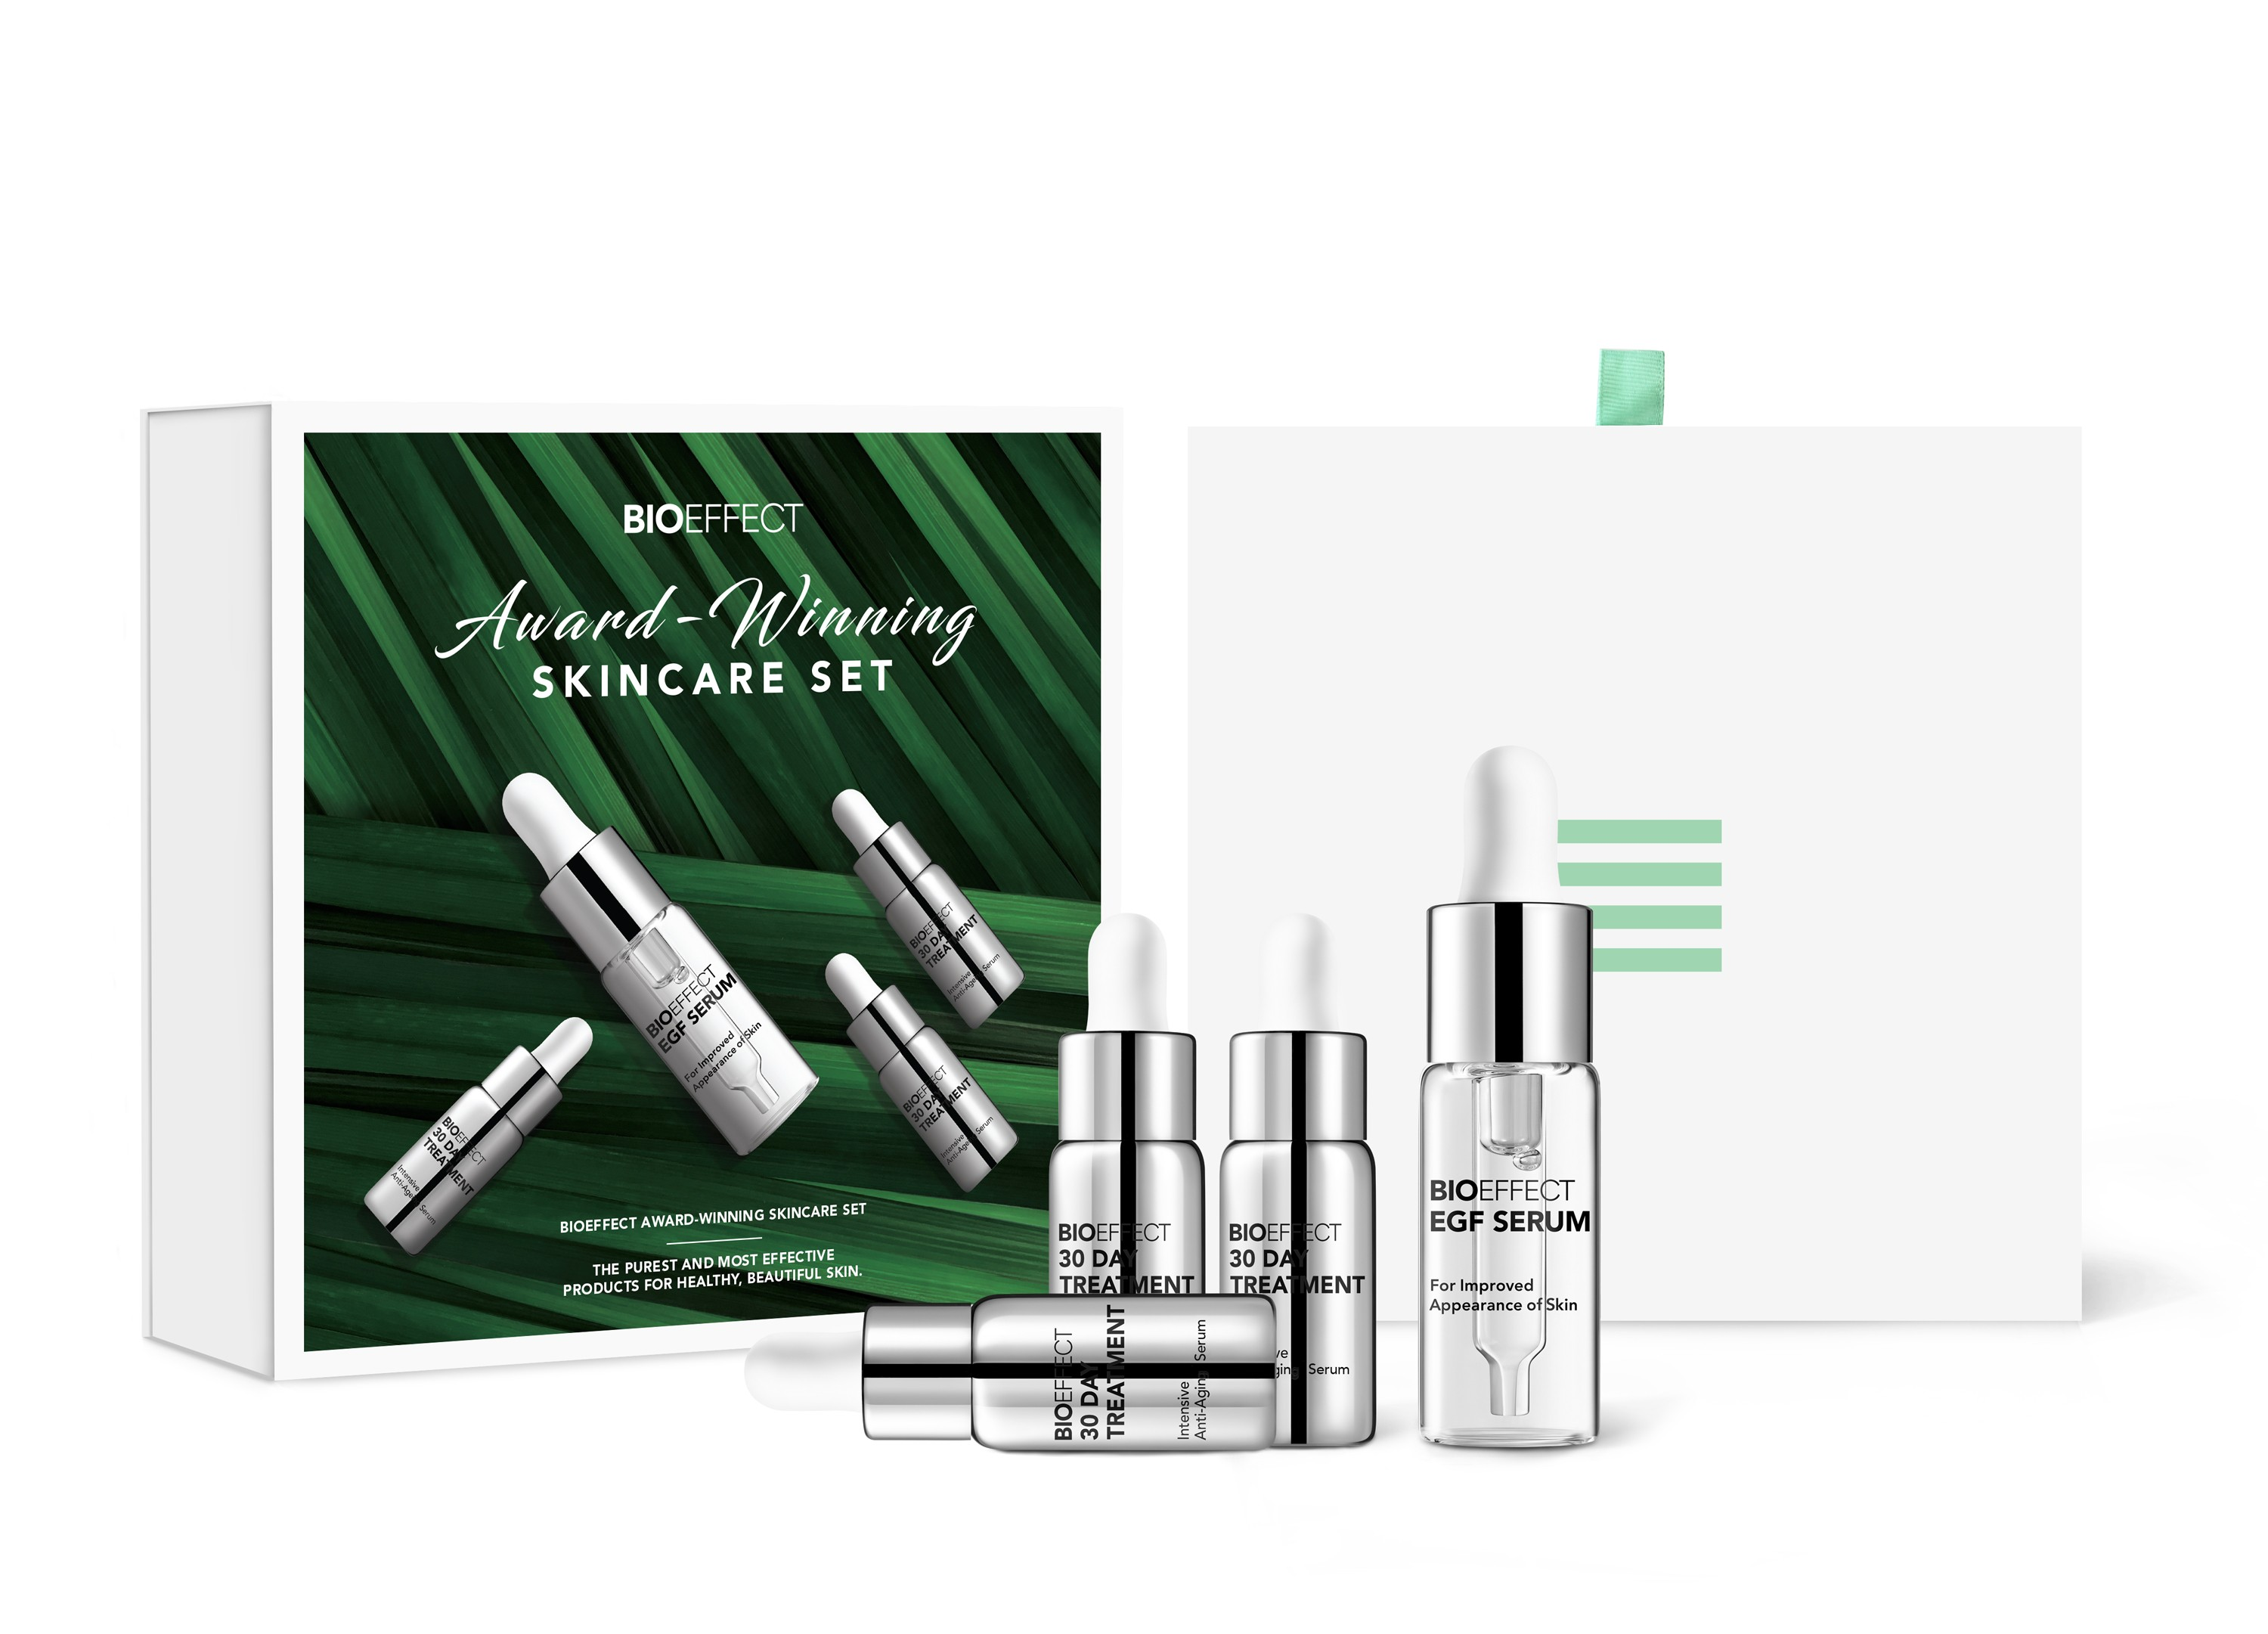 Award Winning Skincare Set - BIOEFFECT